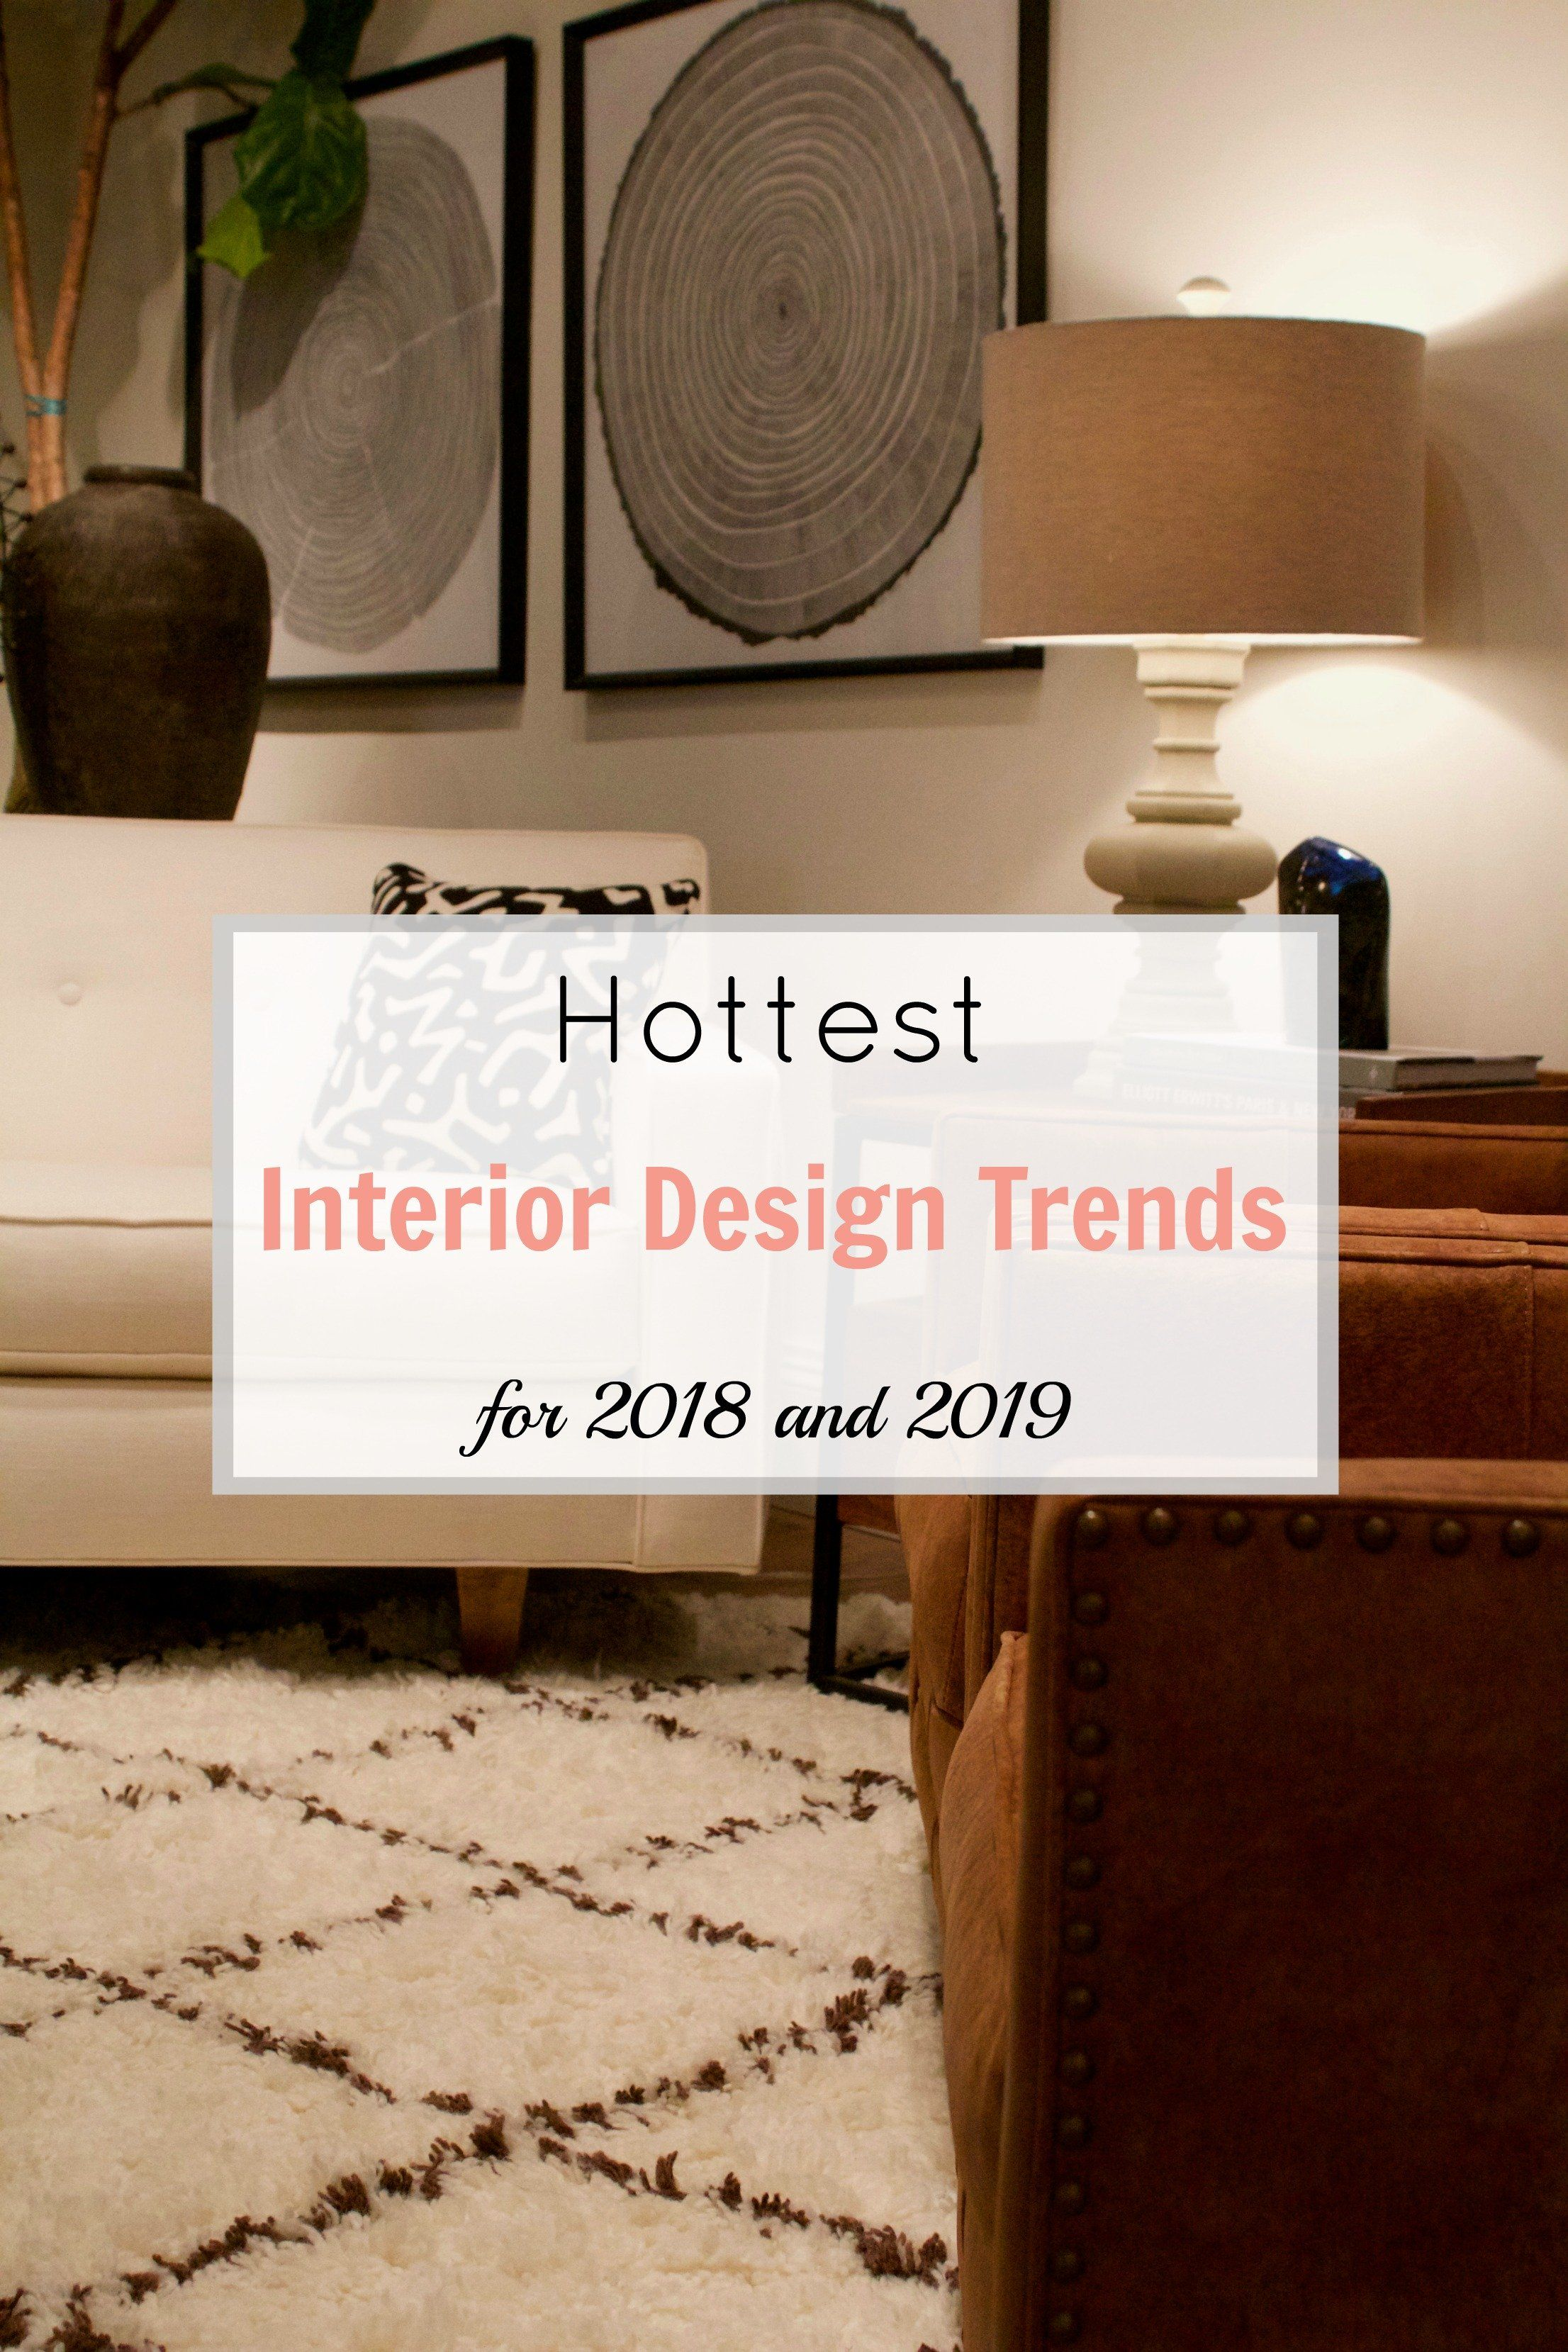 Hottest Interior Design Trends For 2018 And 2019 | Gates Interior Design And  Feng Shui   Amanda Gates